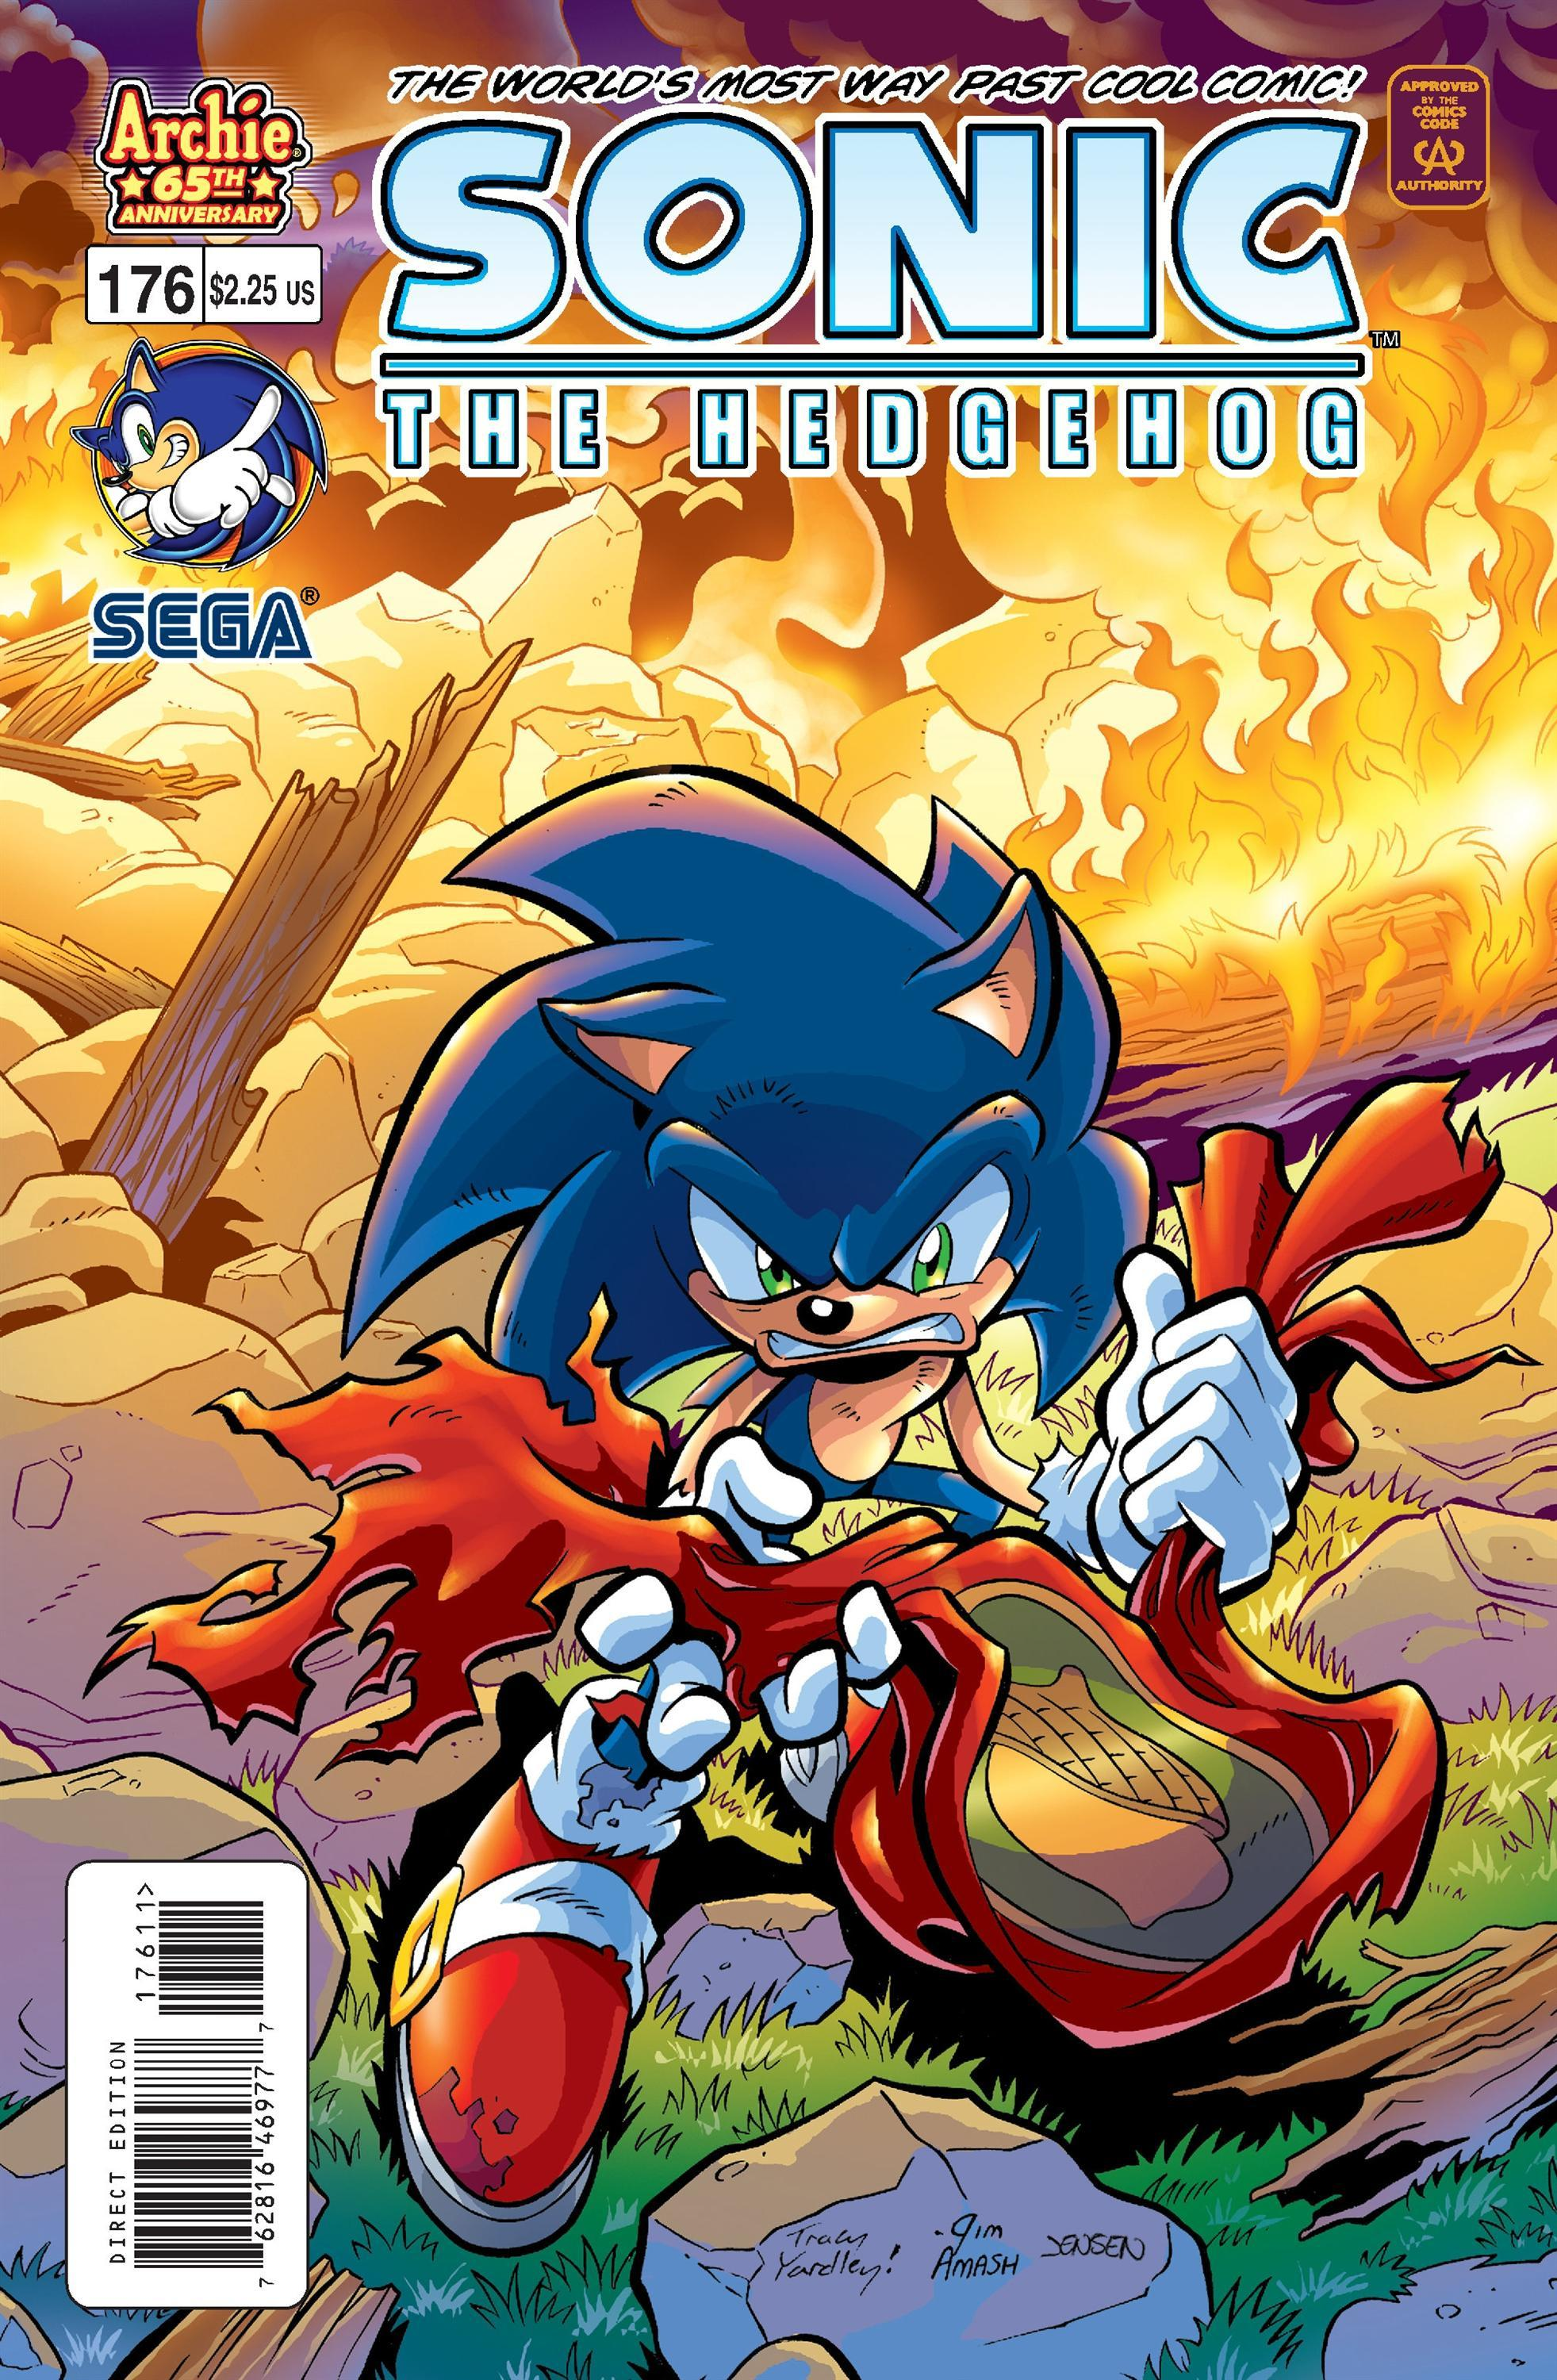 Archie Sonic the Hedgehog Issue 176 | Mobius Encyclopaedia